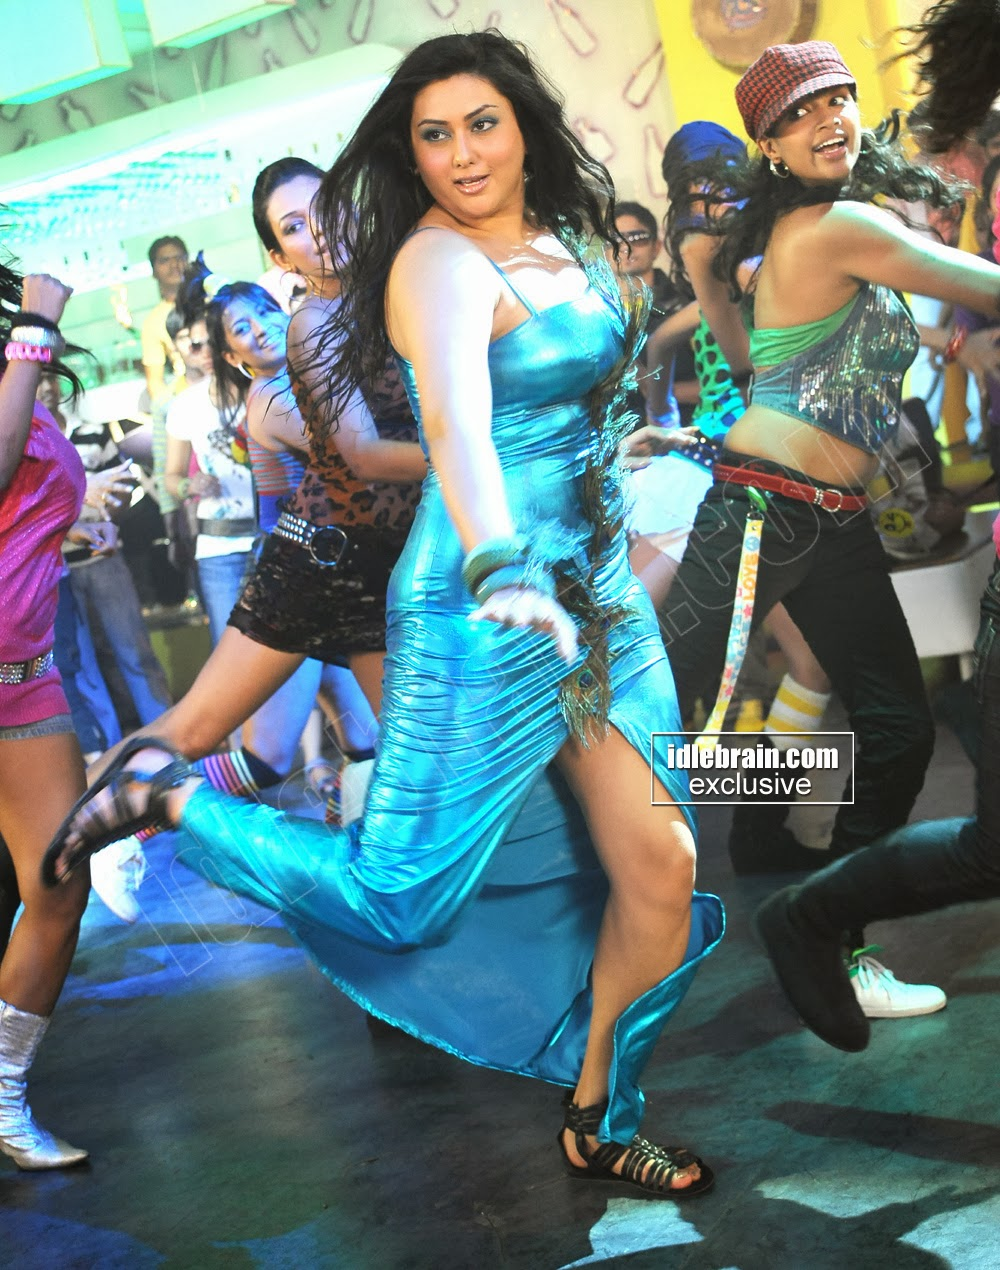 Heroines Dance Photos At Cinemaa Awards 2012: South Actress Hot Pics: SOUTH HOT ACTRESS NAMITHA DANCING